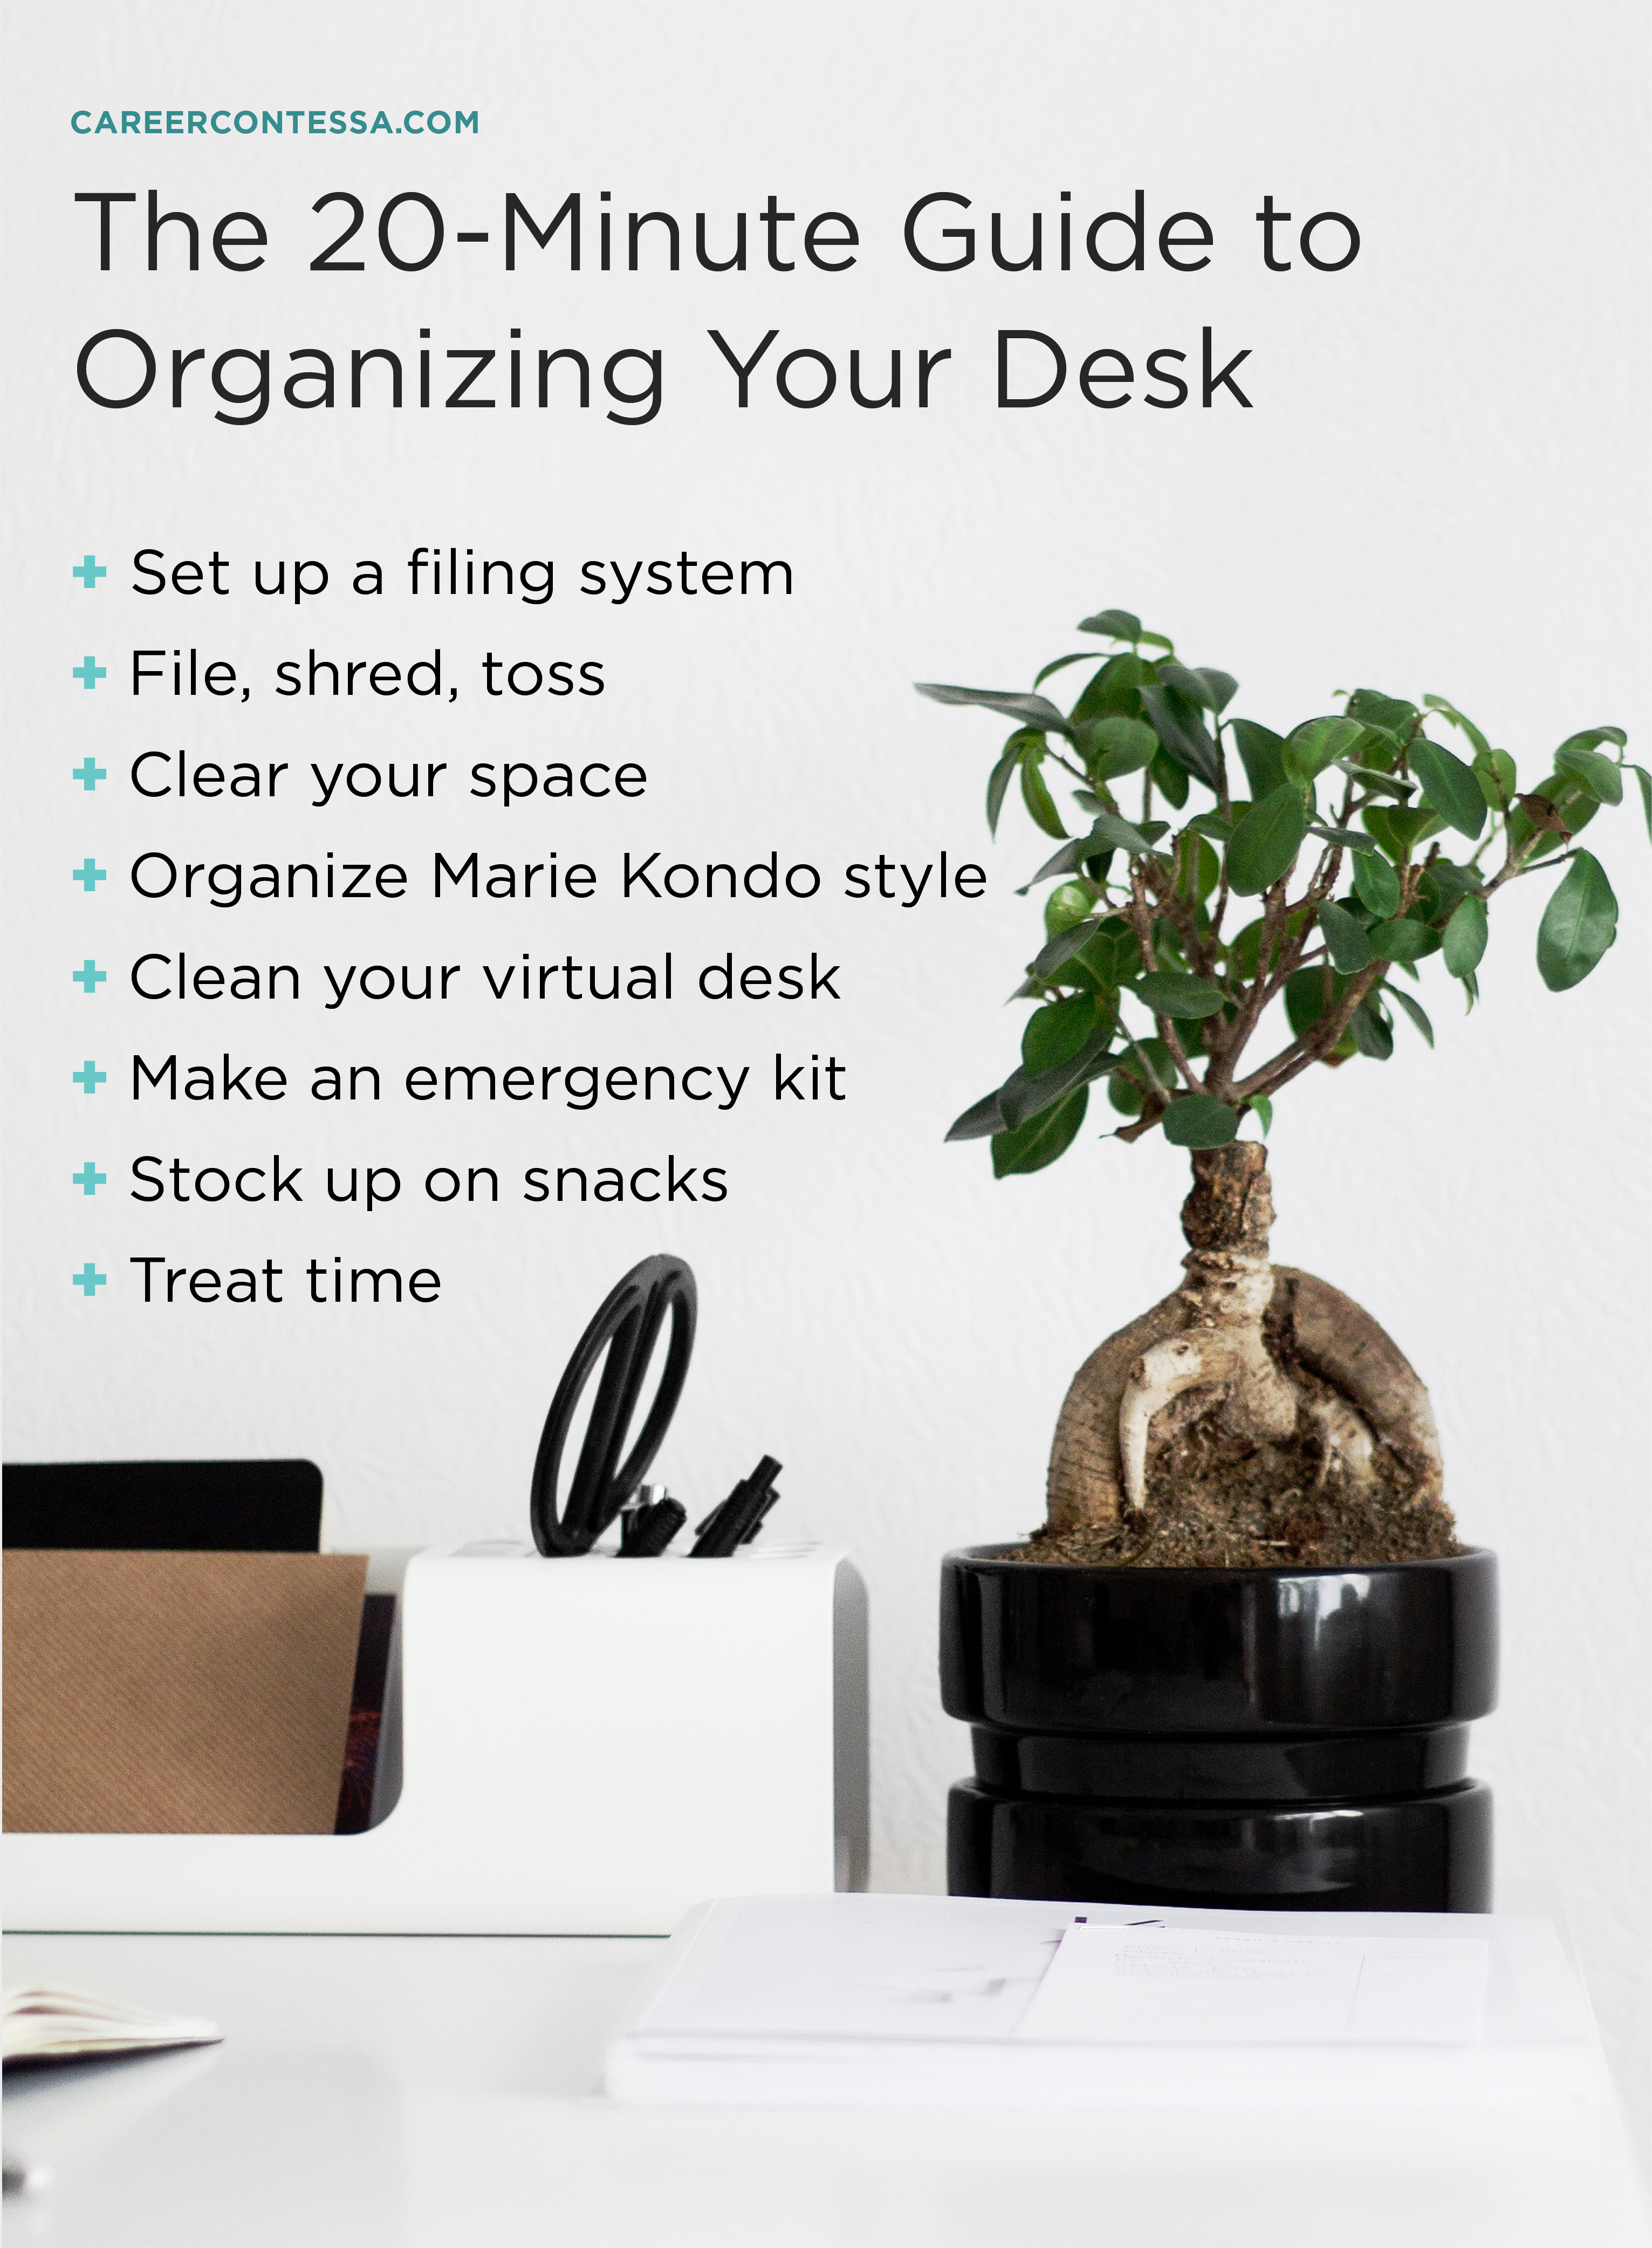 essay increase productivity how to organize your desk with how to  the minute guide to organizing your desk career contessa organize marie  kondo style essay on healthy